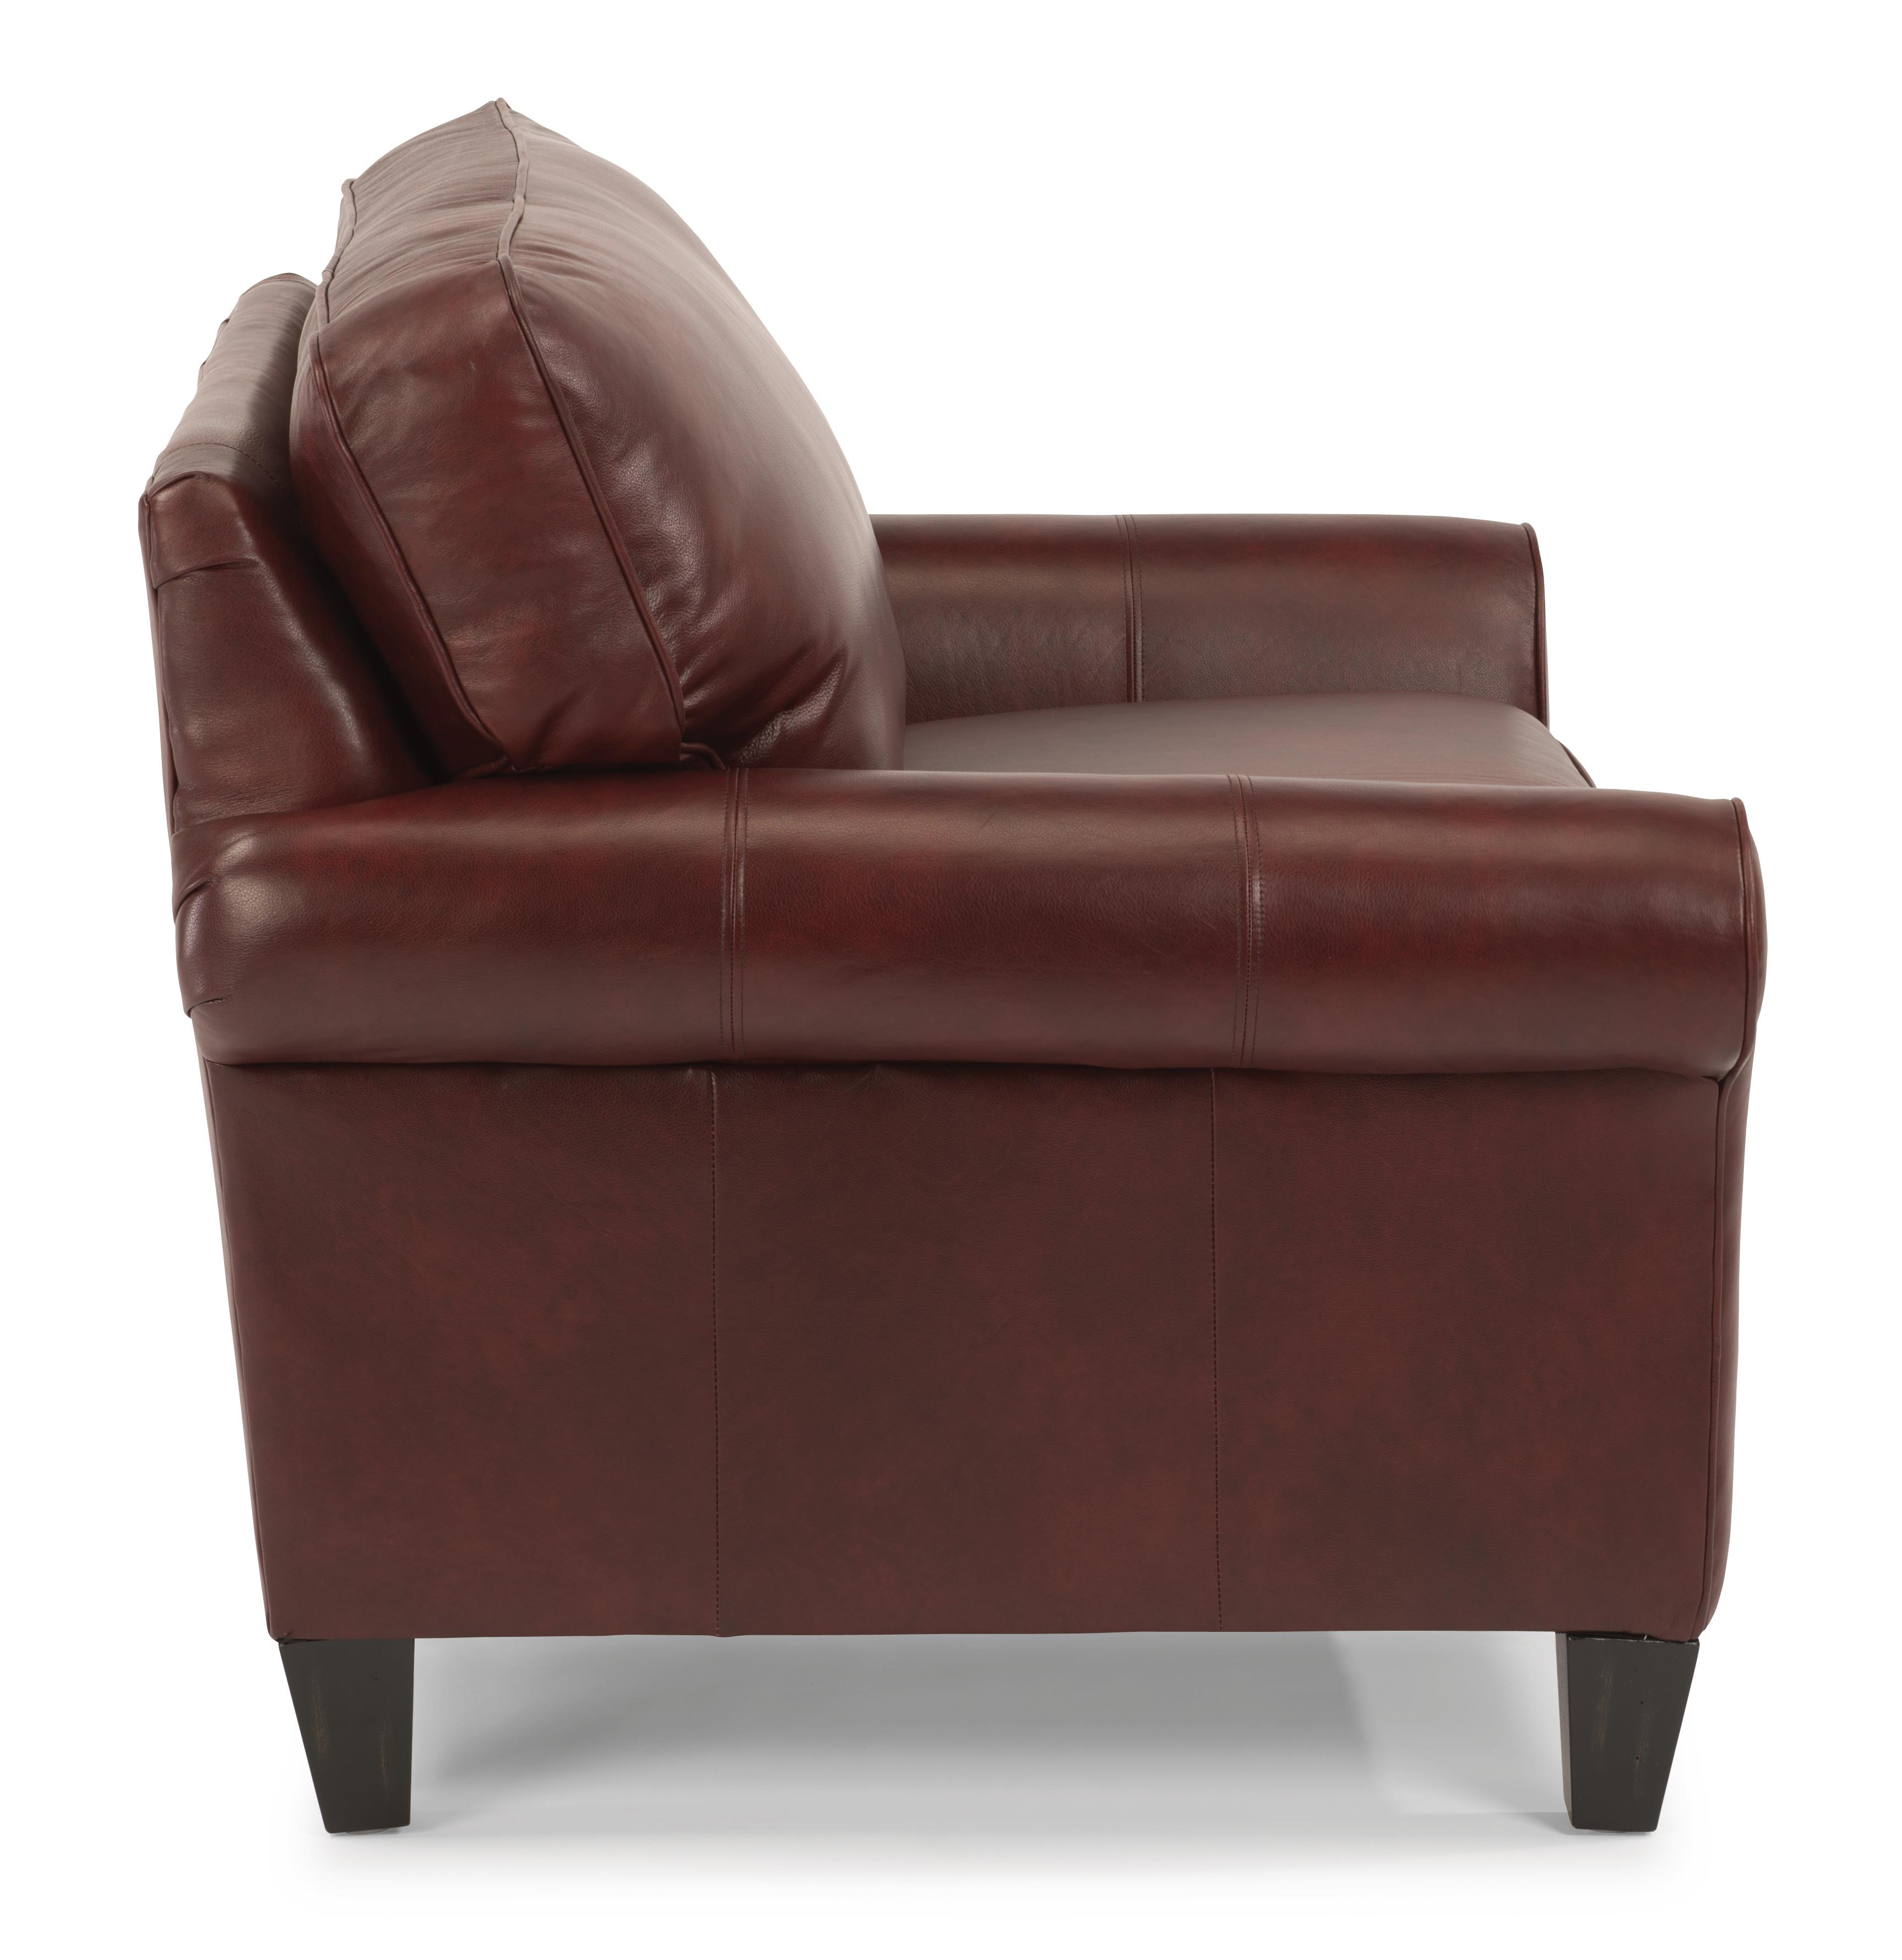 Flexsteel Westside Sofa Reviews: Flexsteel Westside Casual Style Chair And 1/2 With Rolled